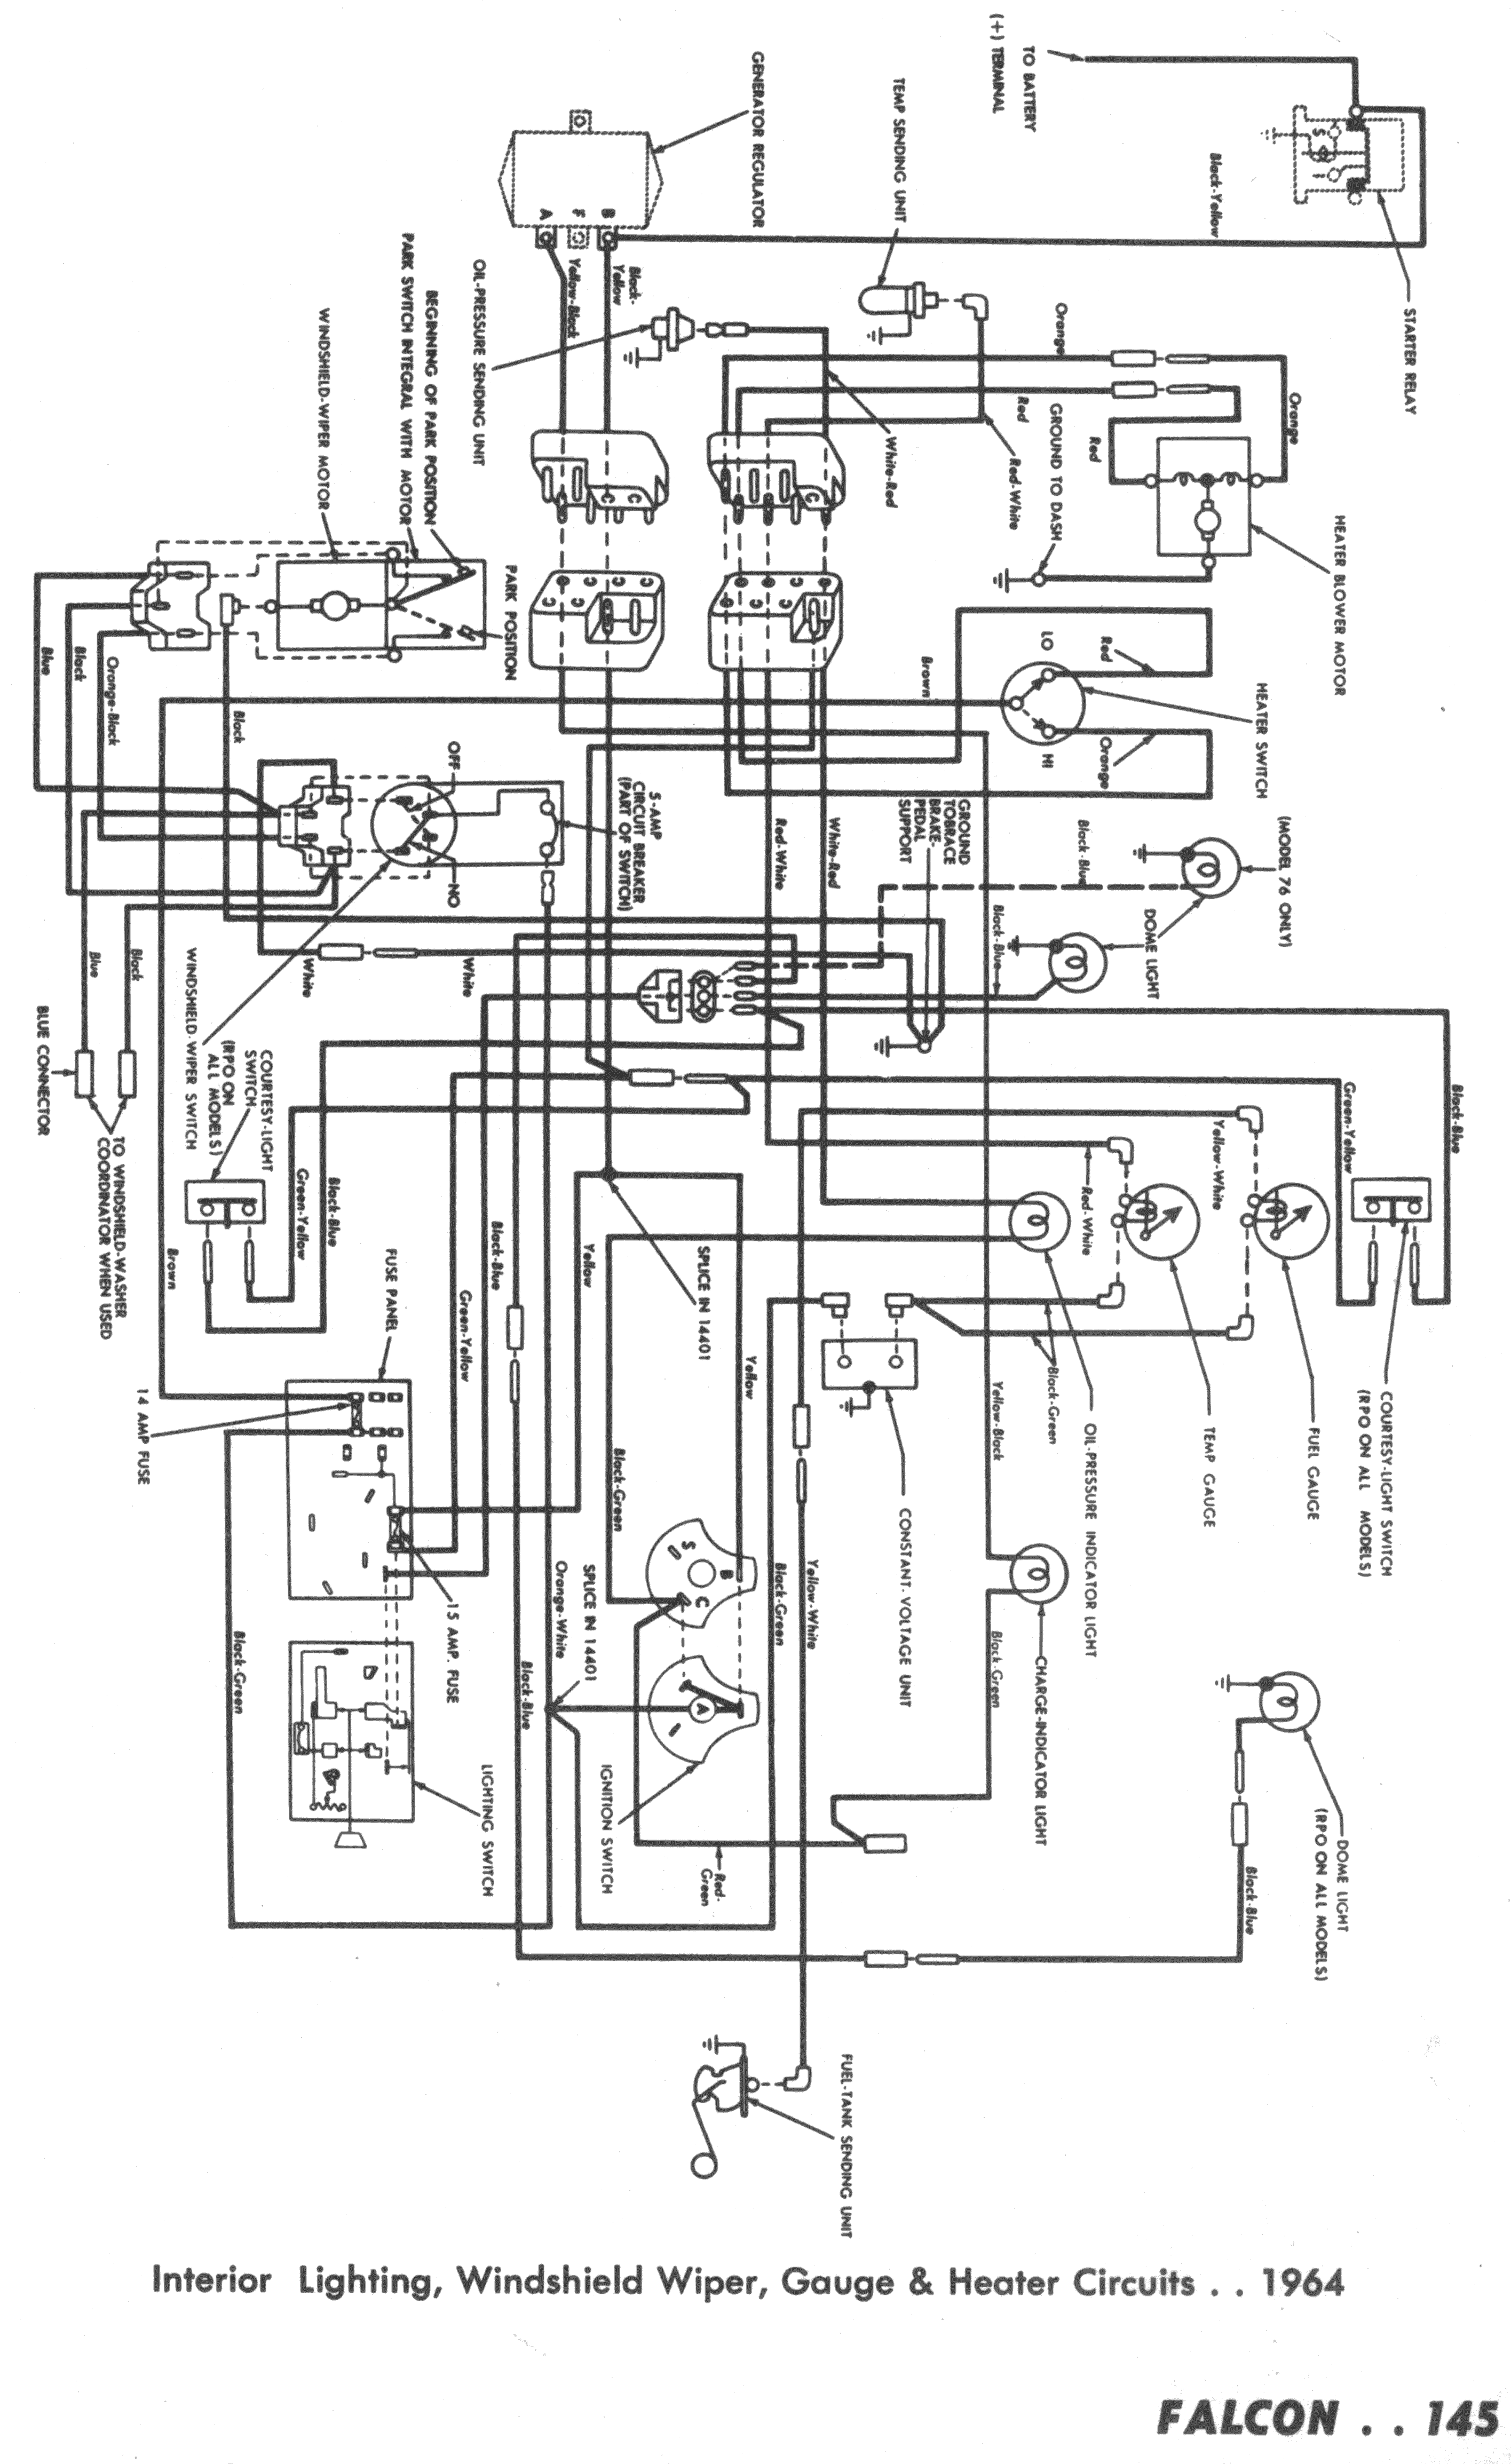 D2 Falcon Wiring Diagram